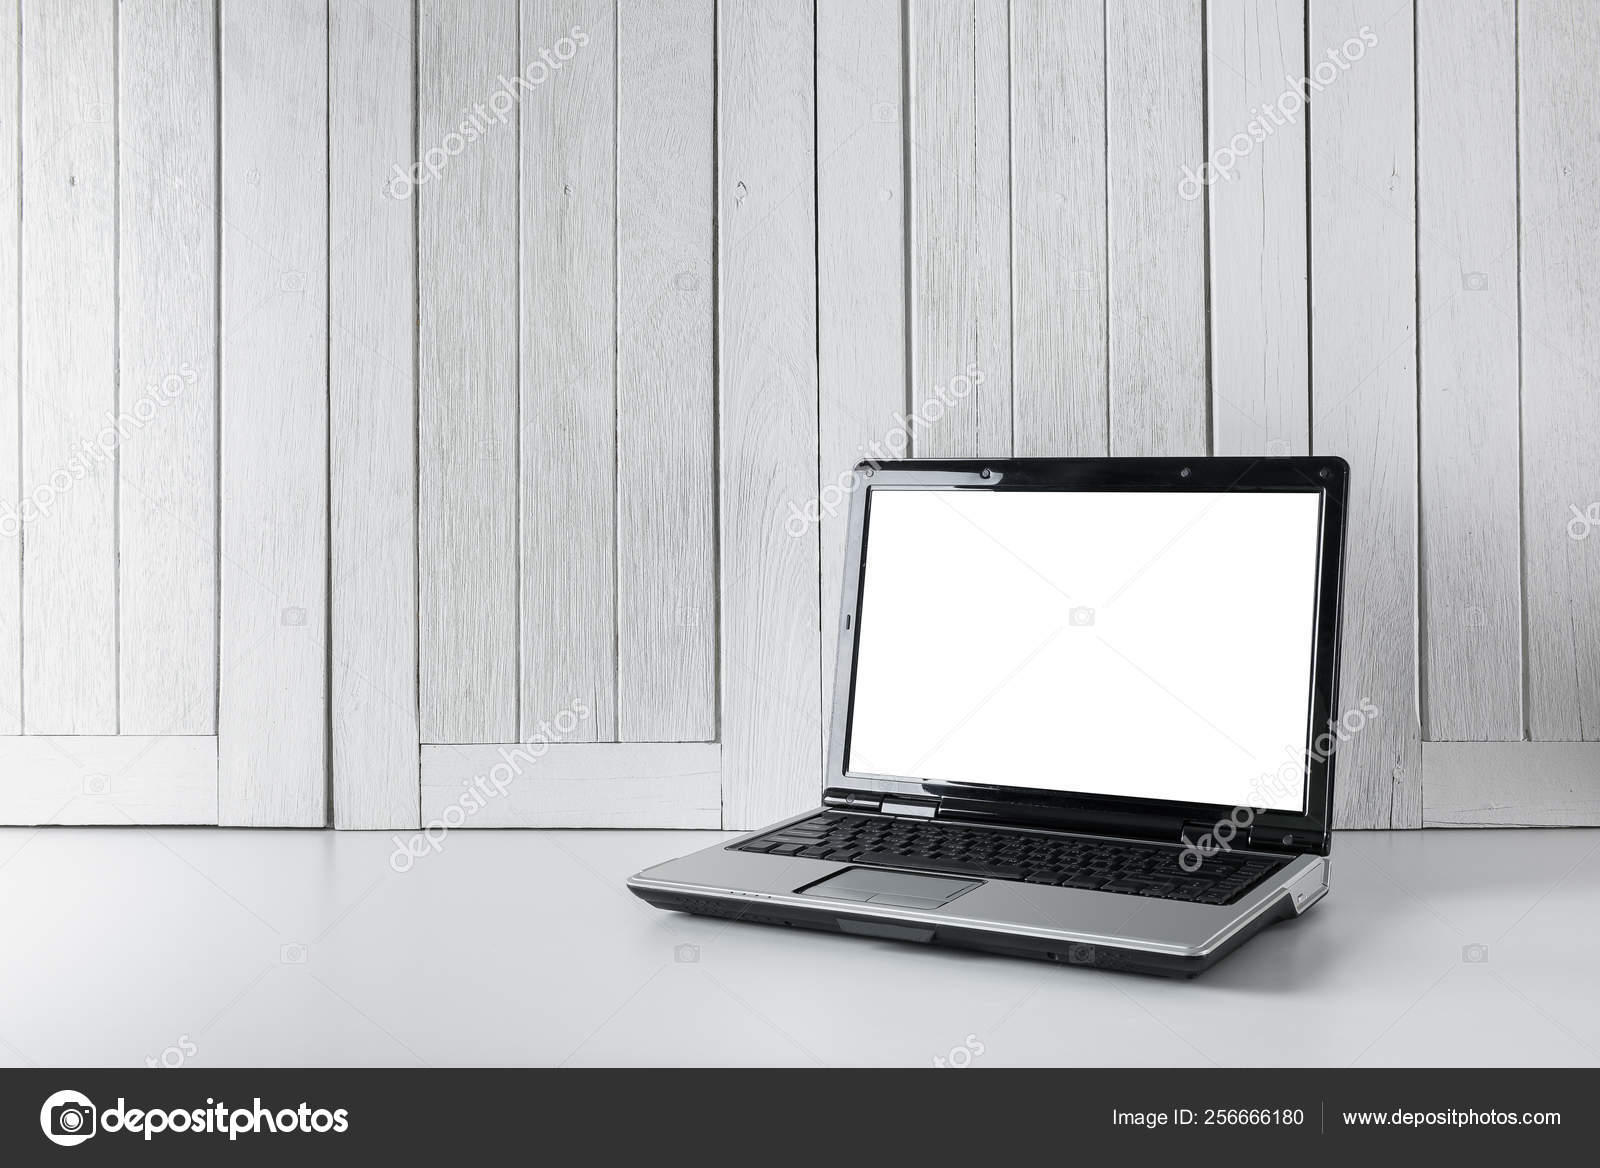 Workplace background with Blank white screen modern laptop